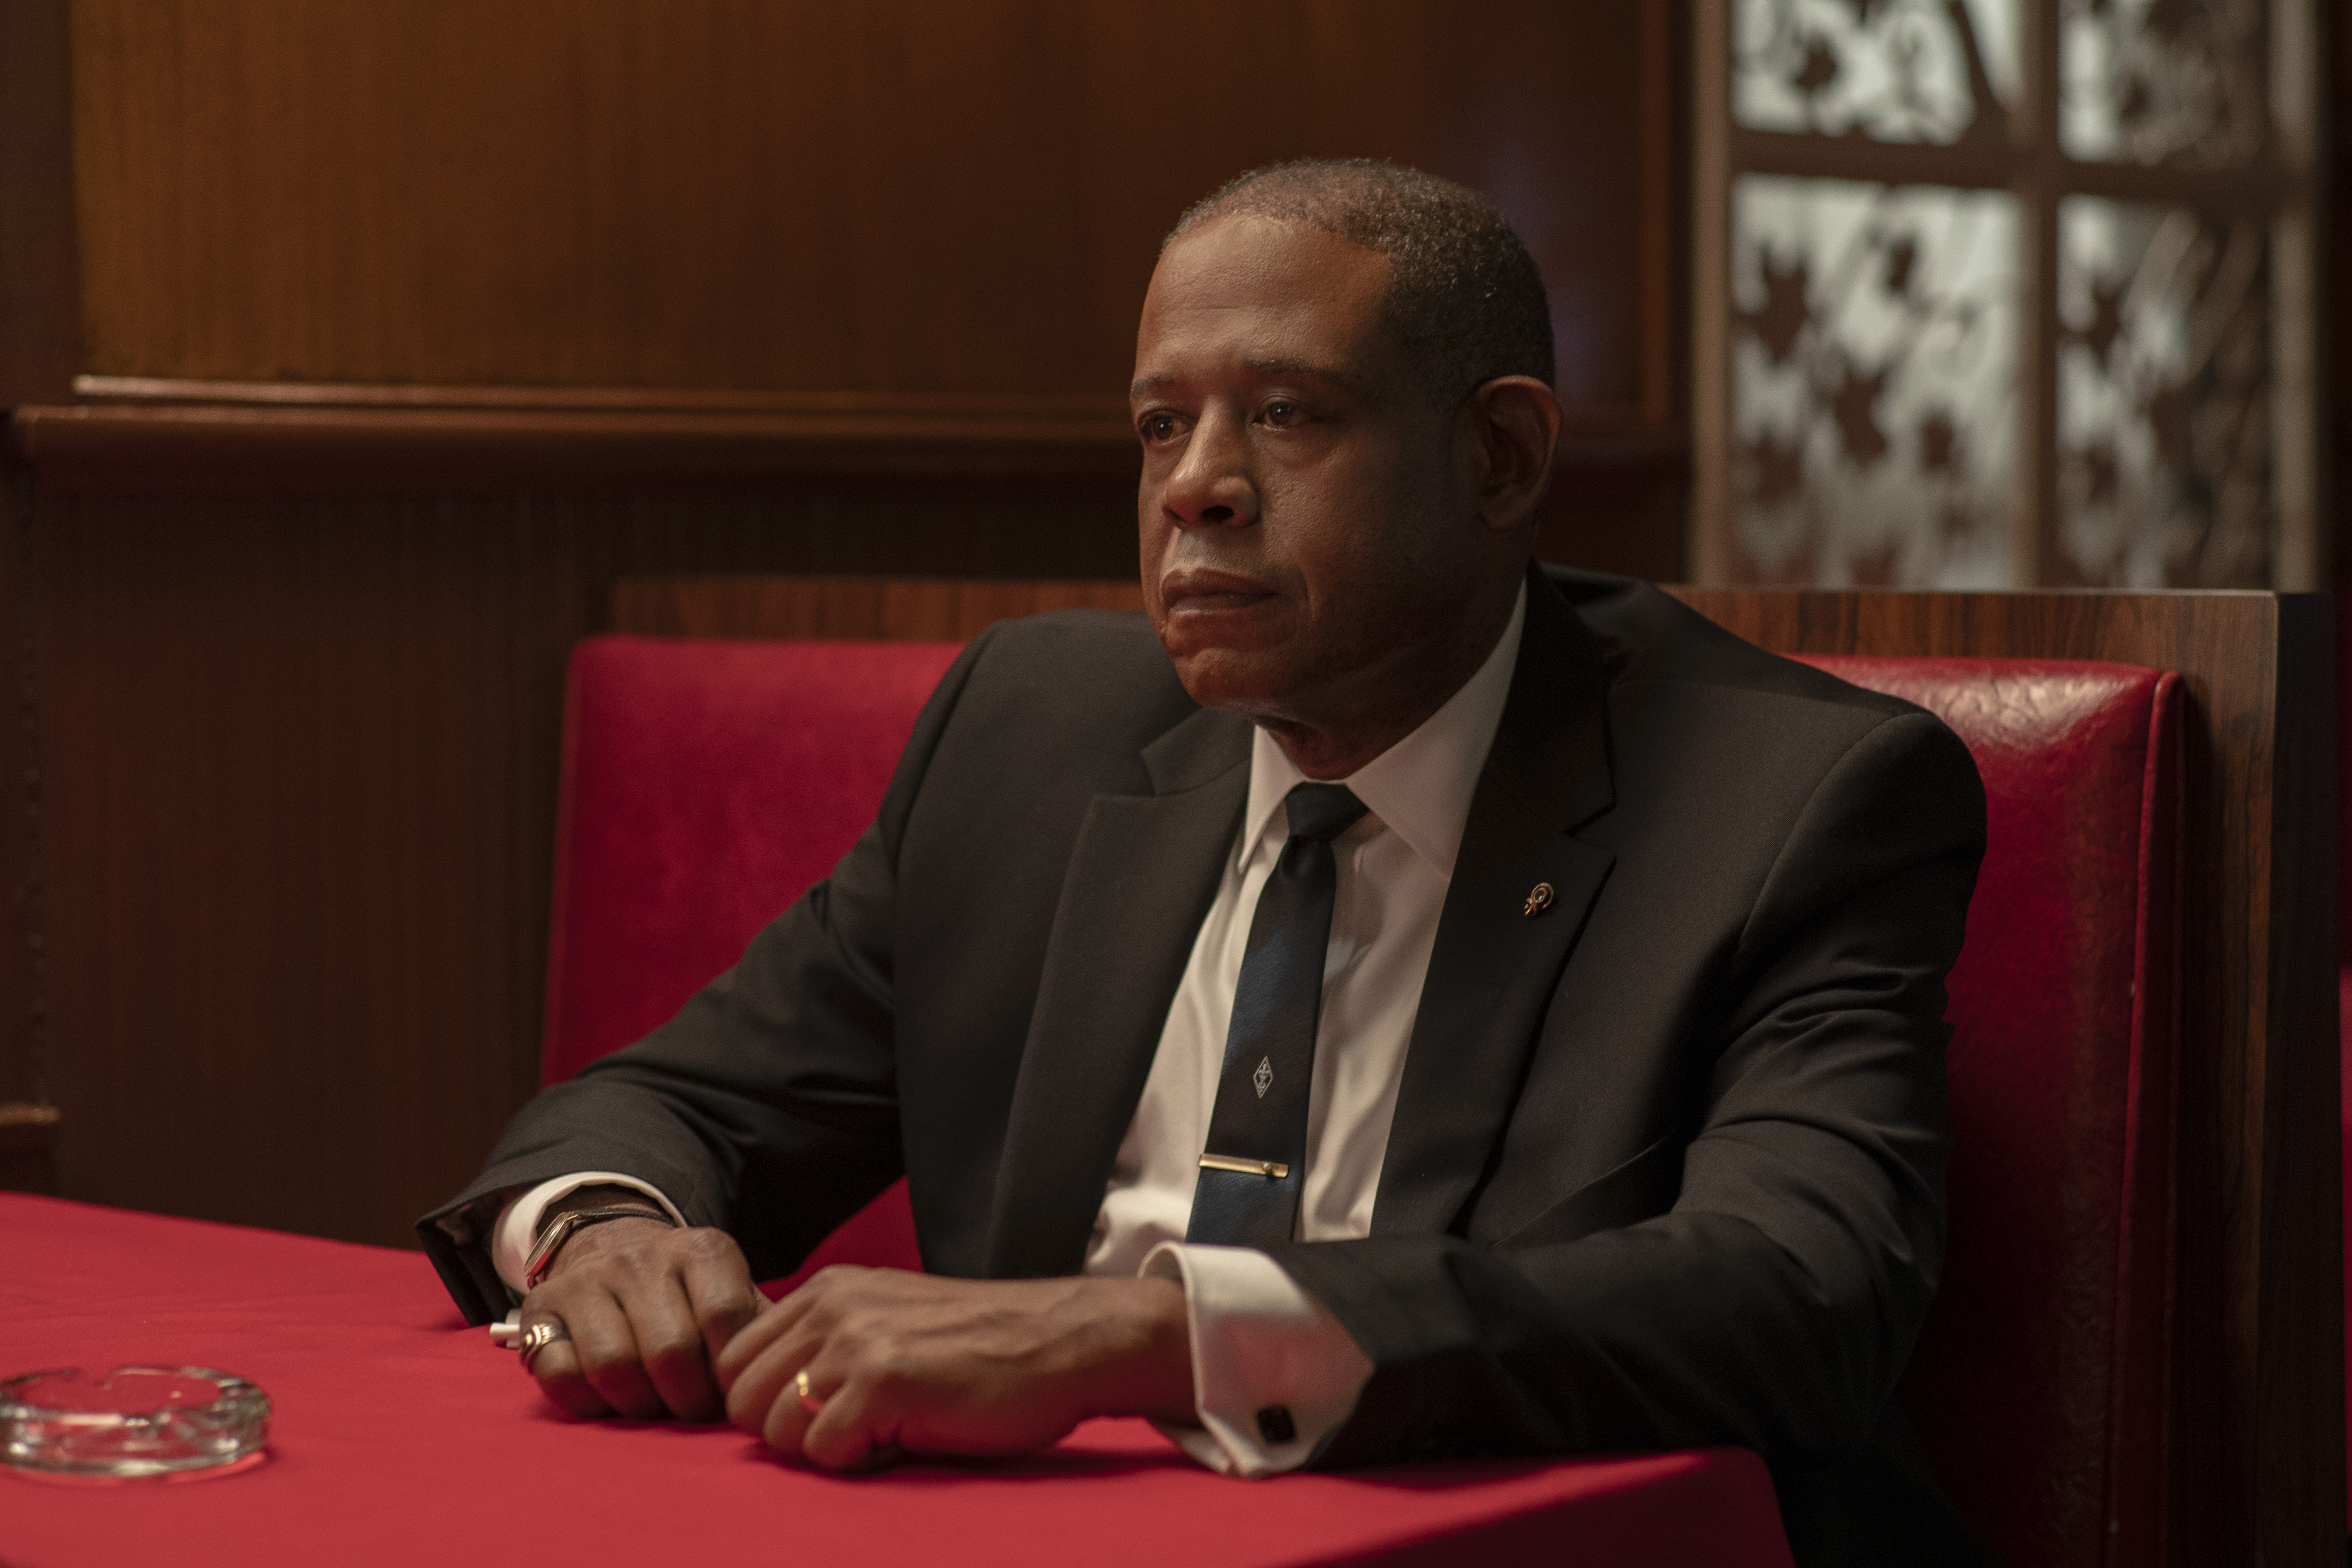 Academy Award winner Forest Whitaker stars as Harlem gangster  Bumpy  Johnson